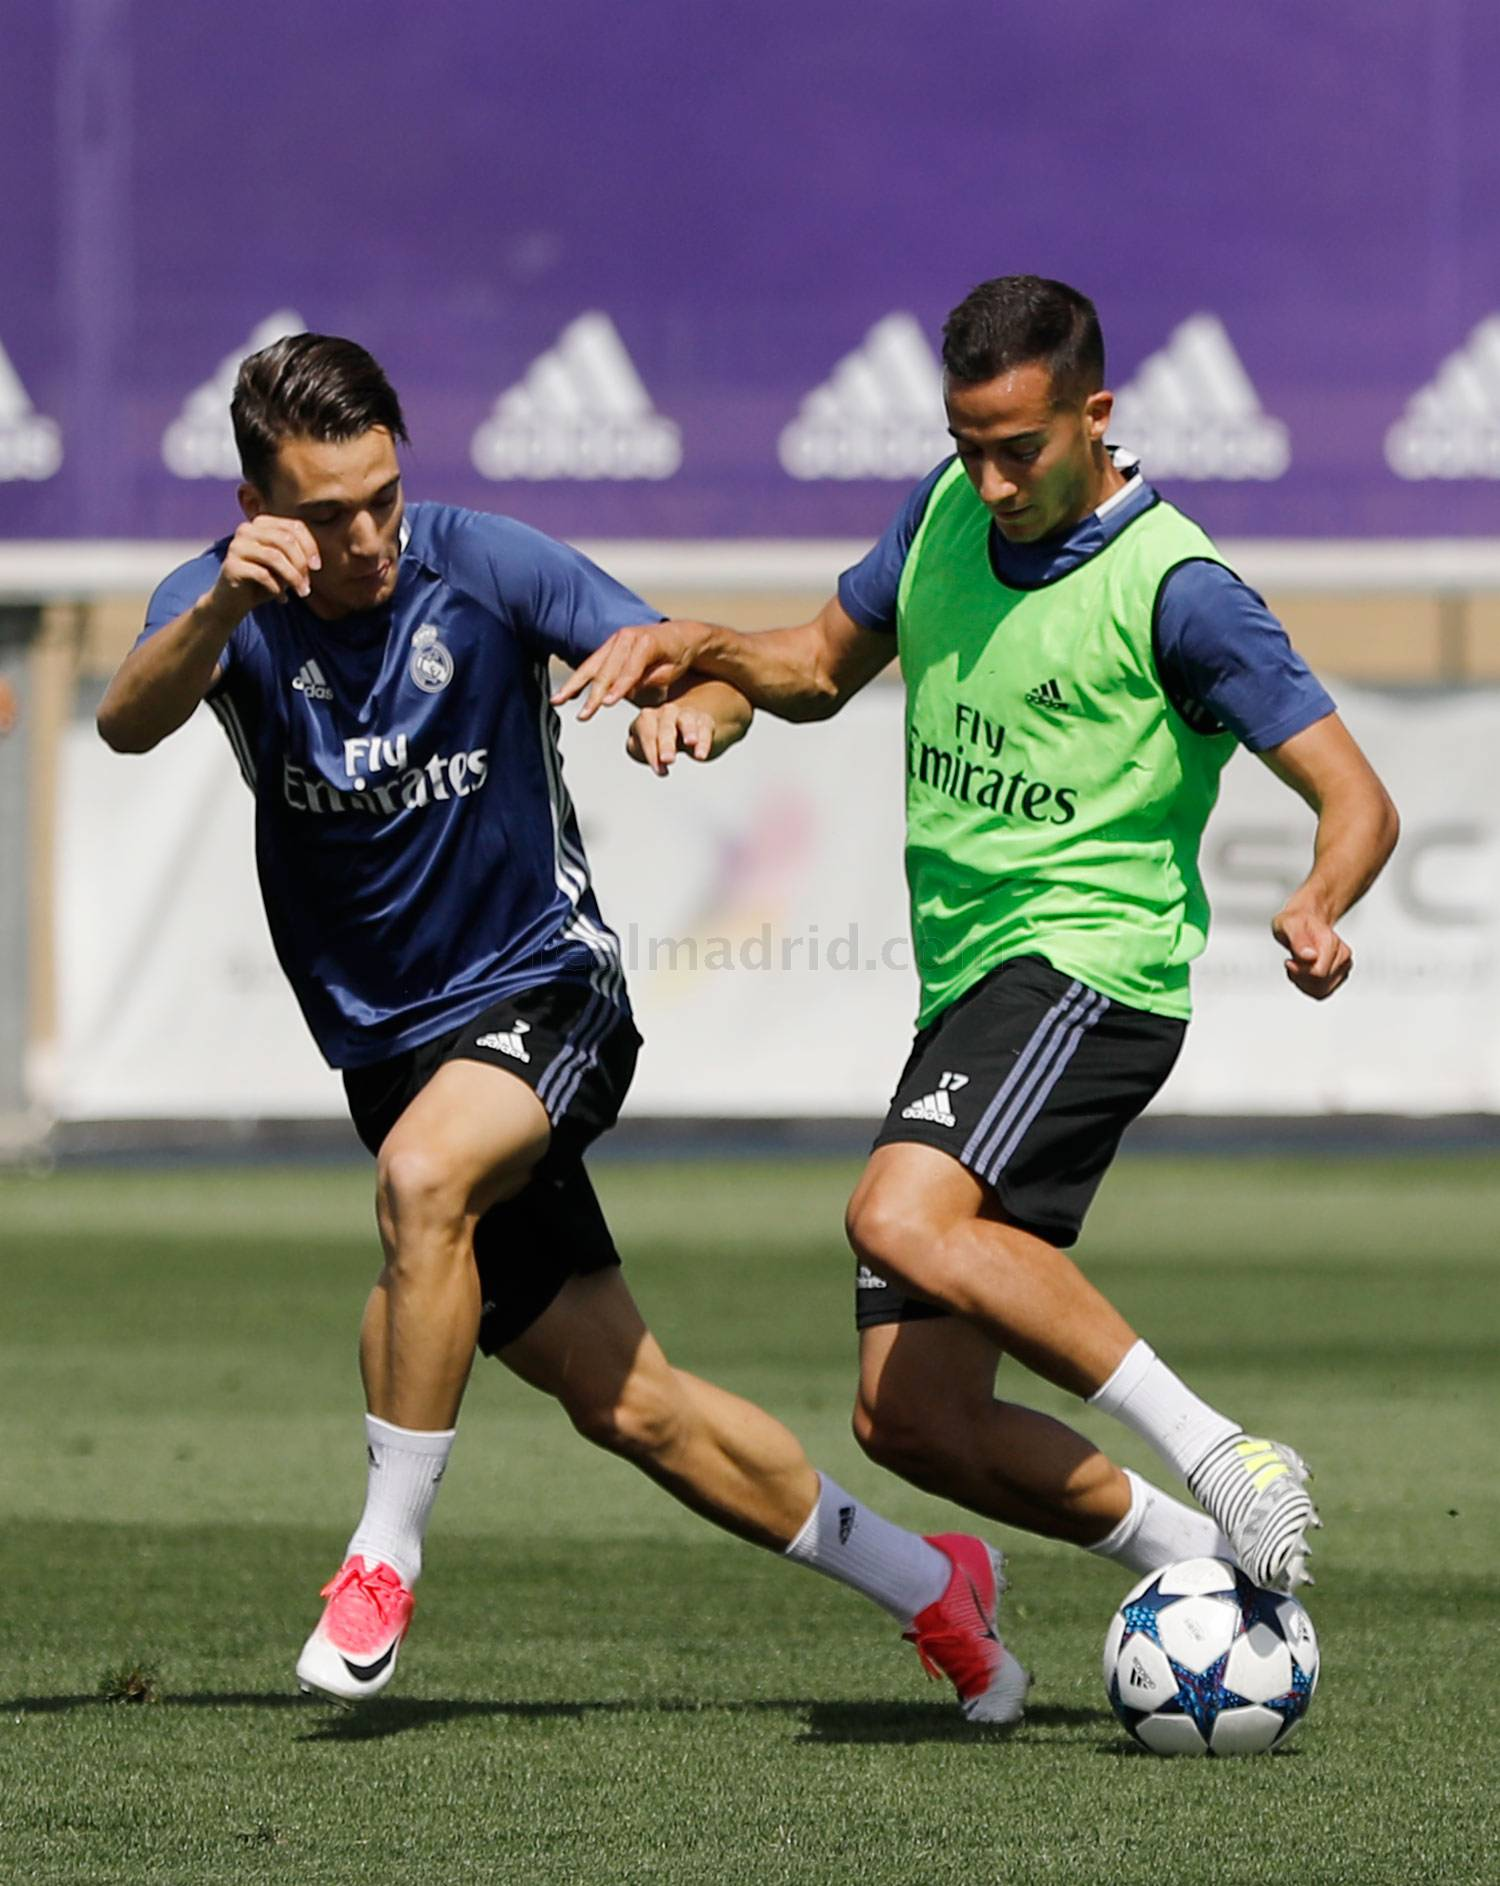 Real Madrid - Entrenamiento del Real Madrid - 26-05-2017